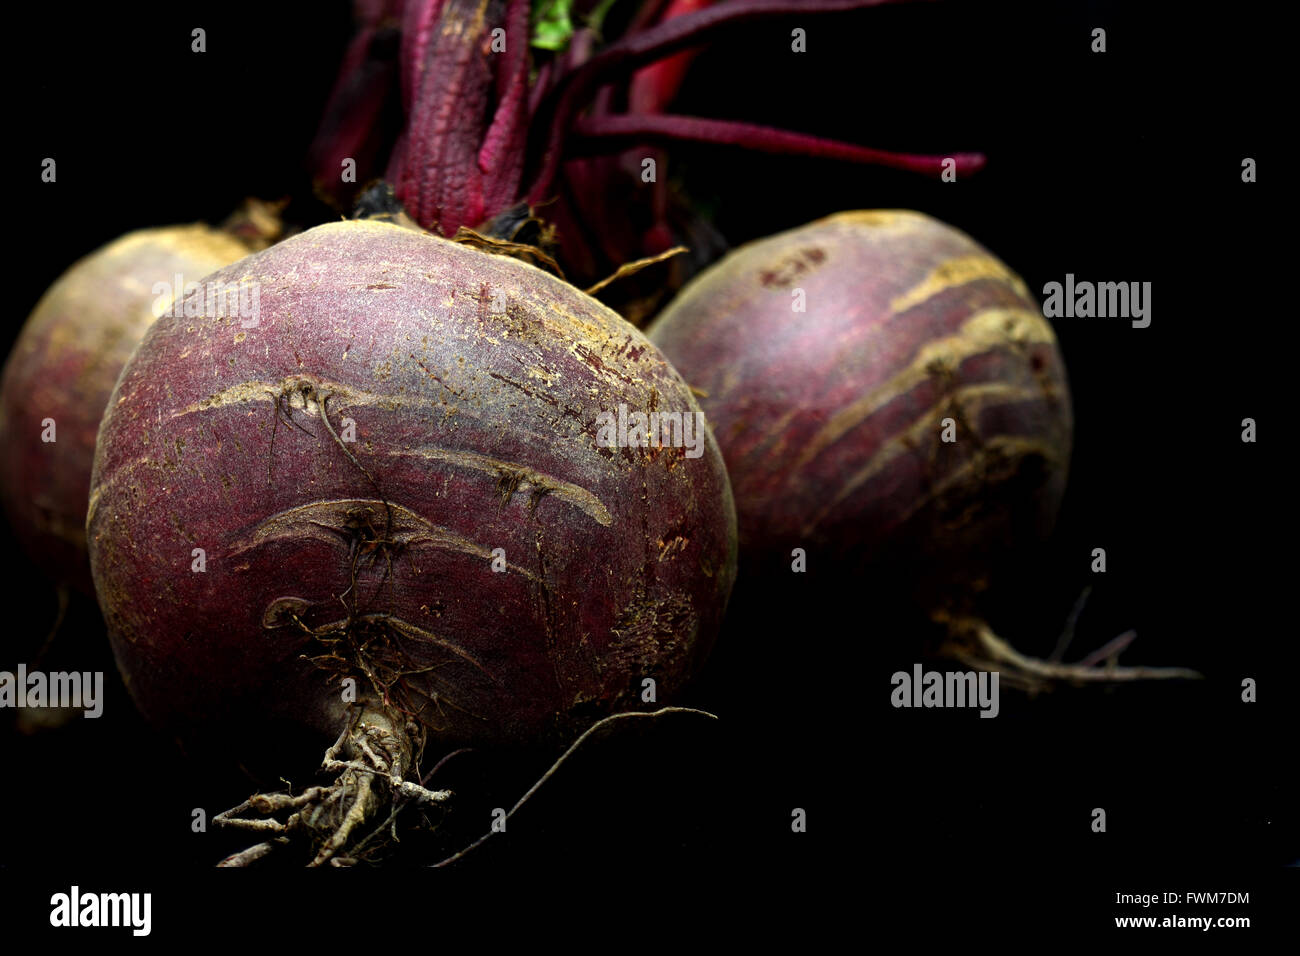 Beetroot on a black background. - Stock Image